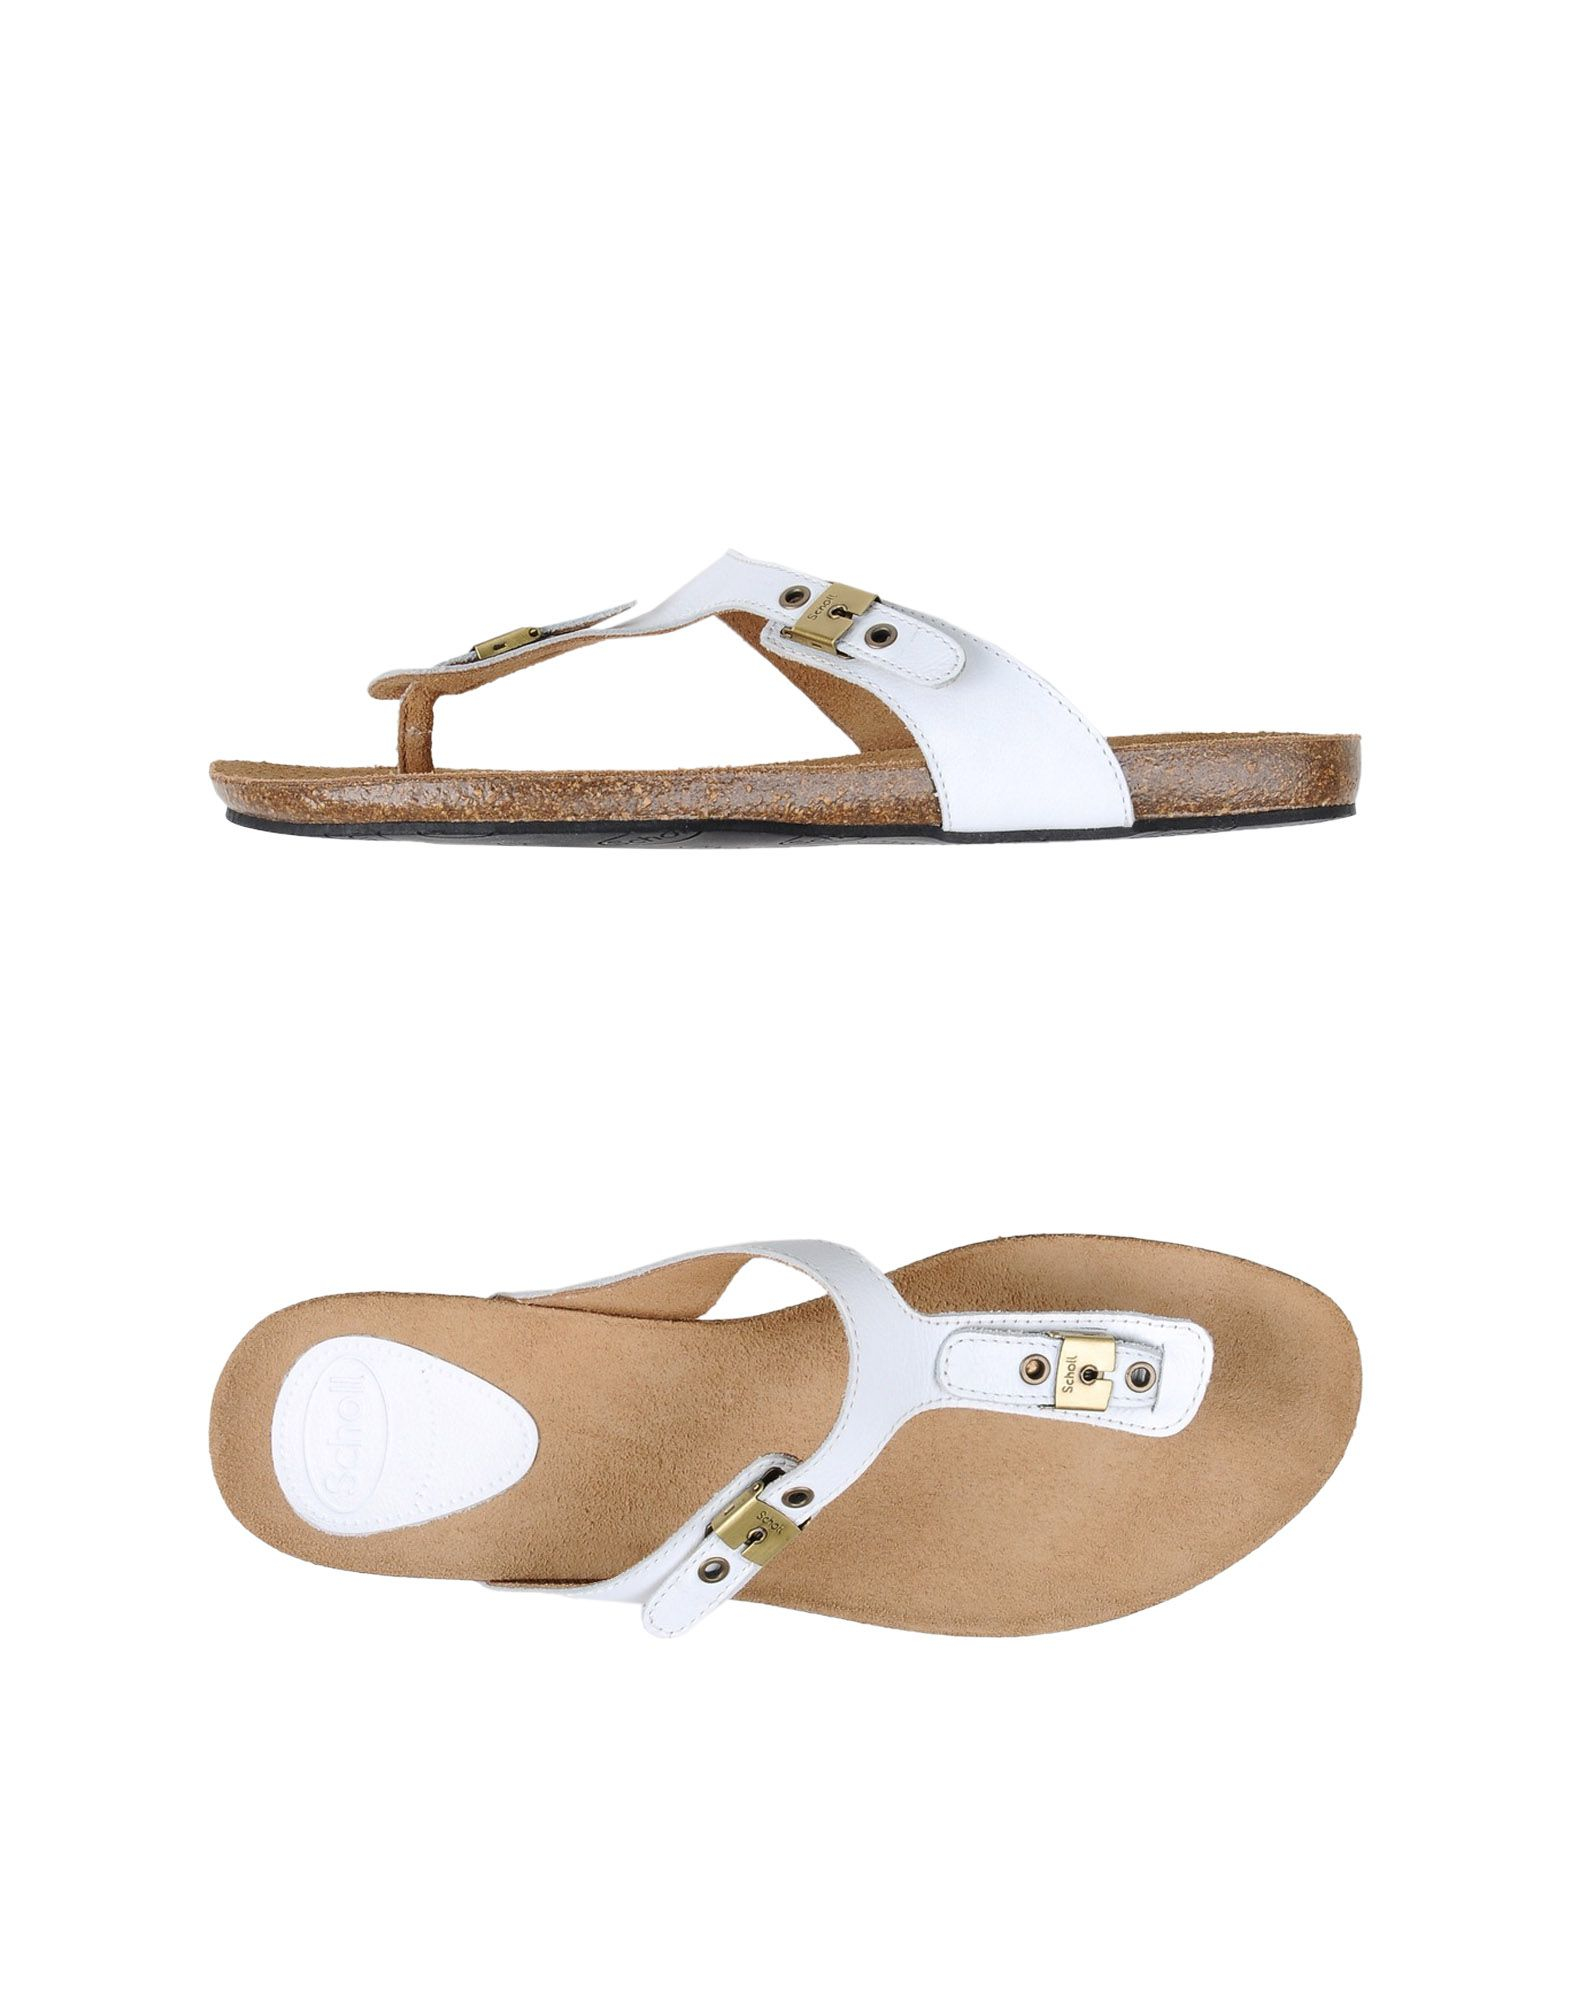 20972ef562f6 Lyst - Scholl Thong Sandal in White